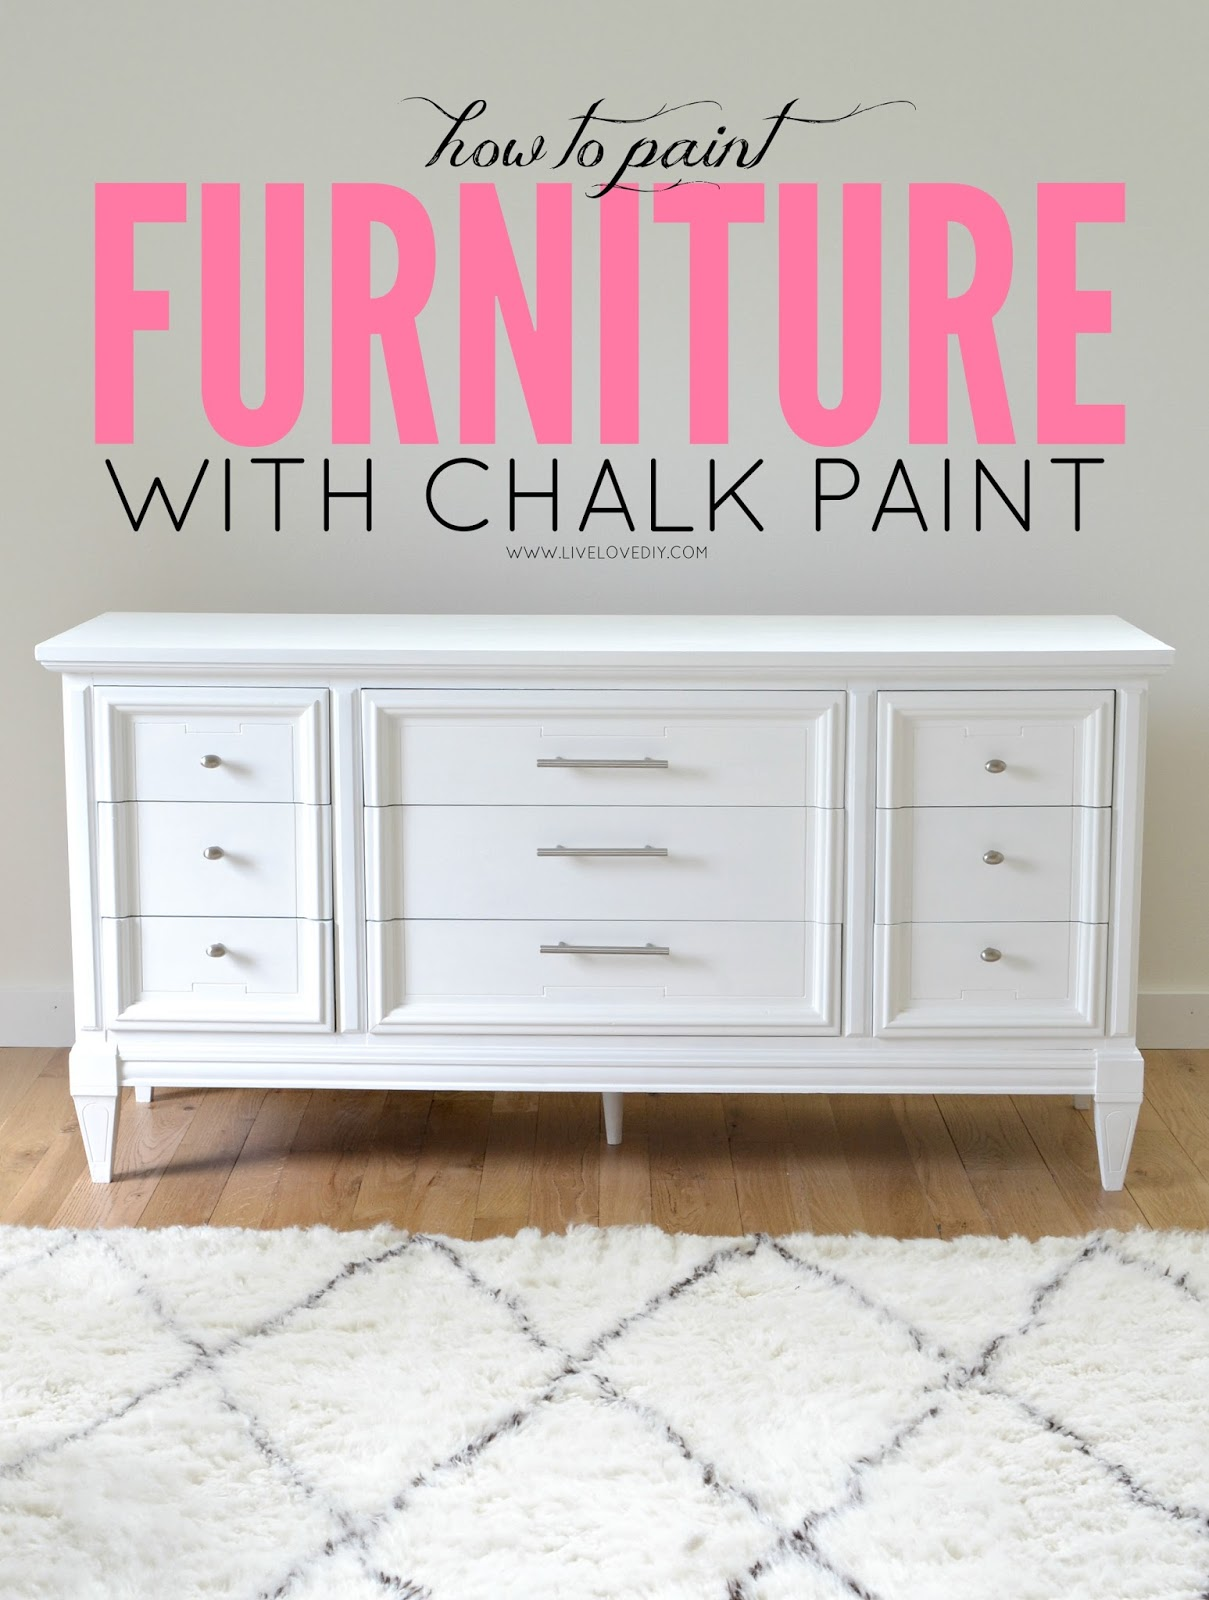 Office Valentines Day Decorations, Livelovediy How To Paint Furniture With Chalk Paint And How To Survive A Diy Disaster